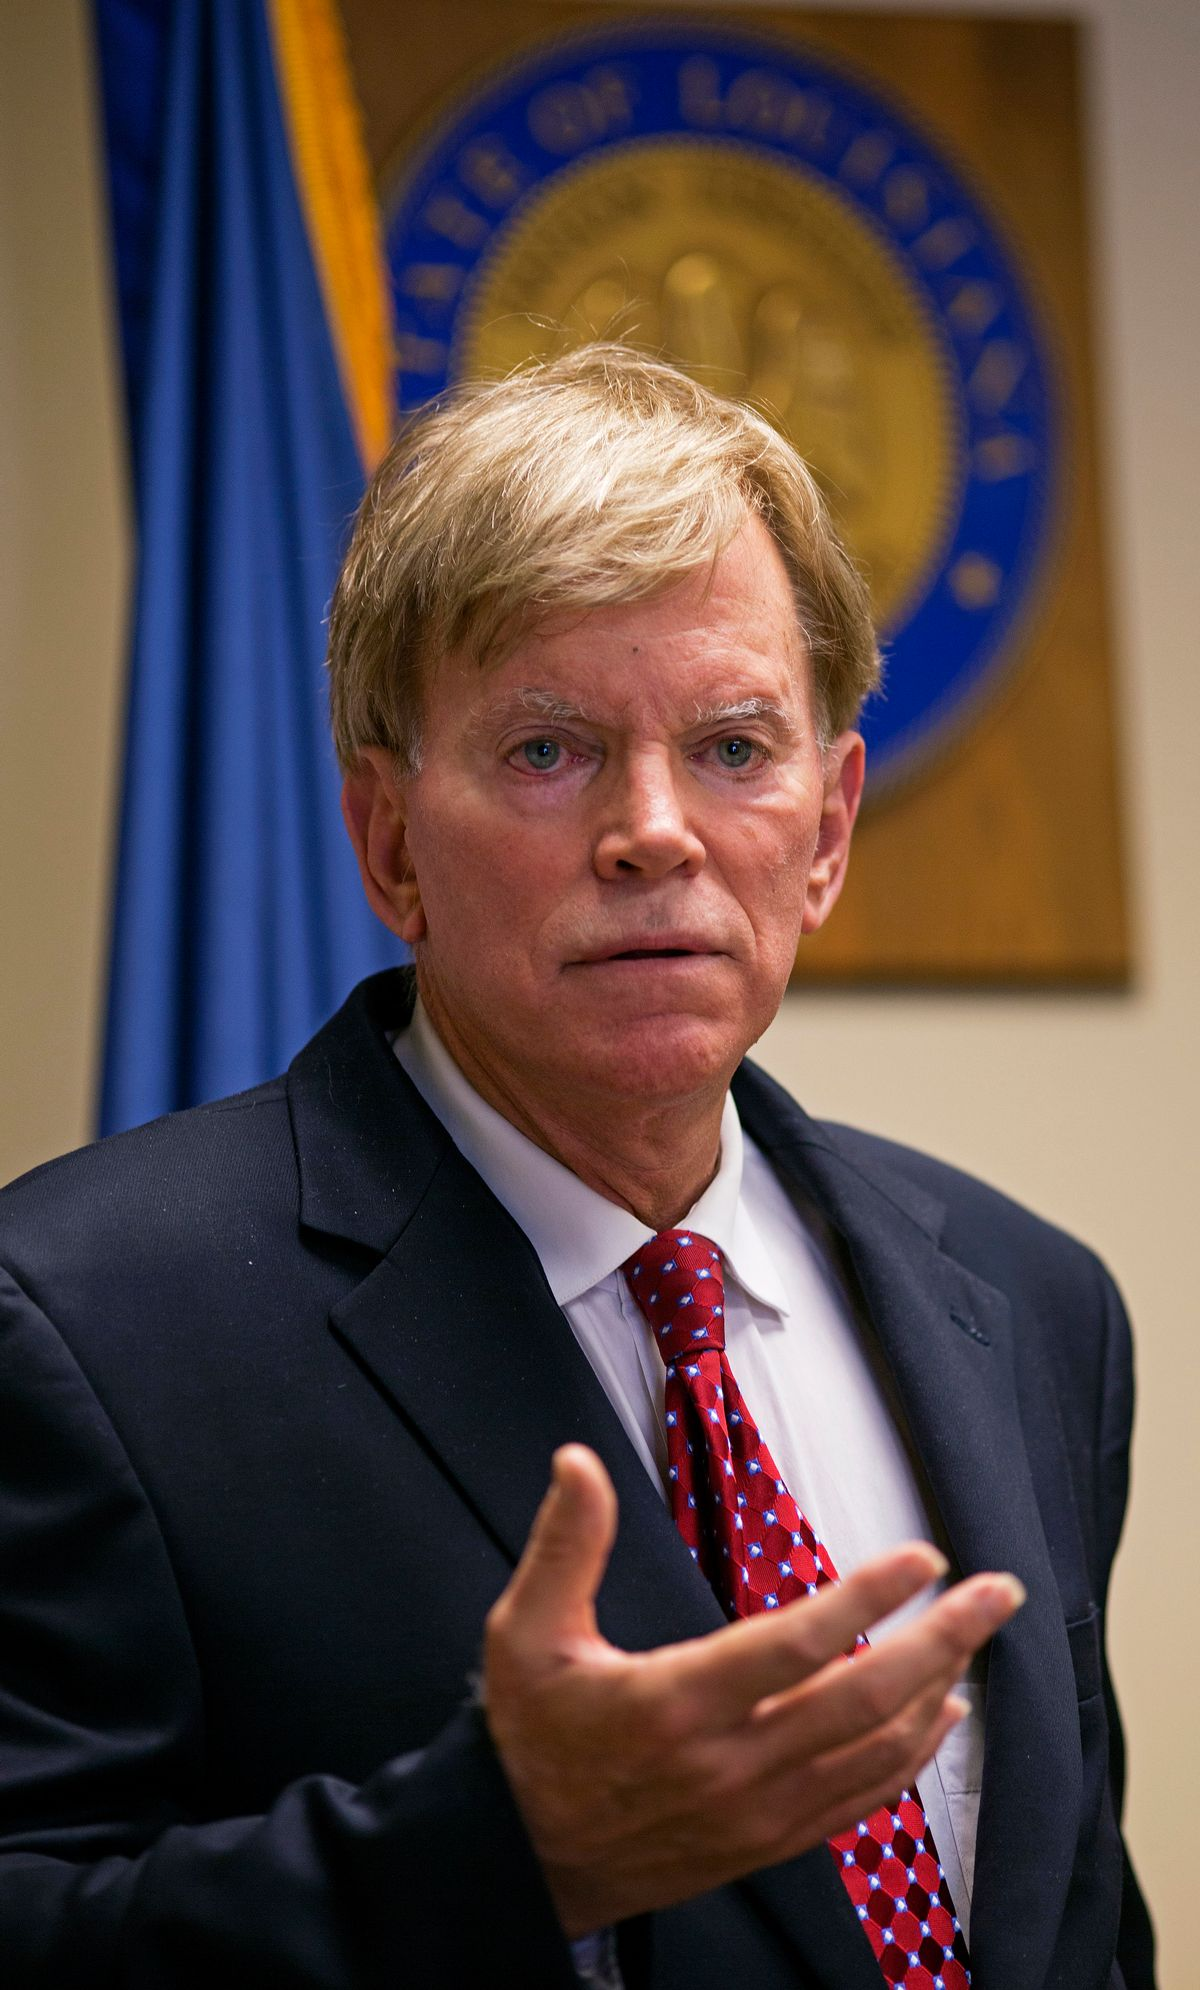 """Former Ku Klux Klan leader David Duke talks to the media at the Louisiana Secretary of State's office in Baton Rouge, La., on Friday, March 22, 2016, after registering to run for the U.S. Senate, saying """"the climate of this country has moved in my direction."""" Duke's candidacy comes one day after Donald Trump accepted the GOP nomination for president, and Duke said he's espoused principles for years that are similar to the themes Republicans are now supporting in Trump's campaign, on issues such as immigration and trade. (AP Photo/Max Becherer) (AP)"""